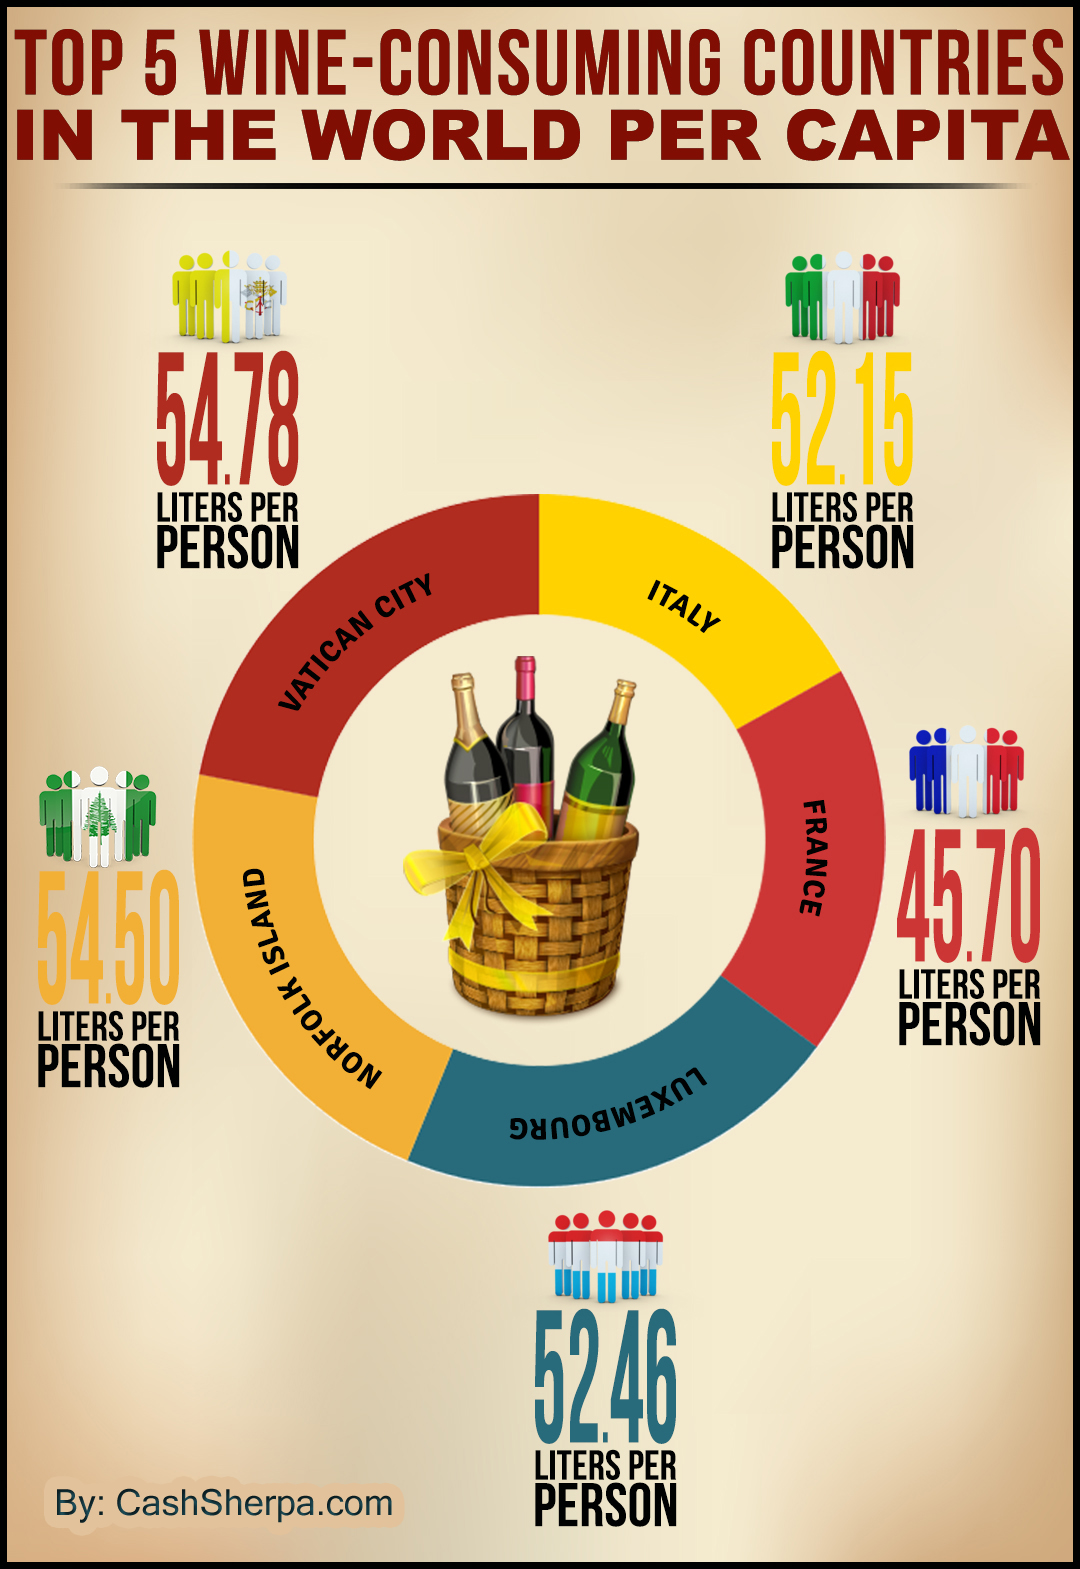 Top 5 Wine Consuming Countries